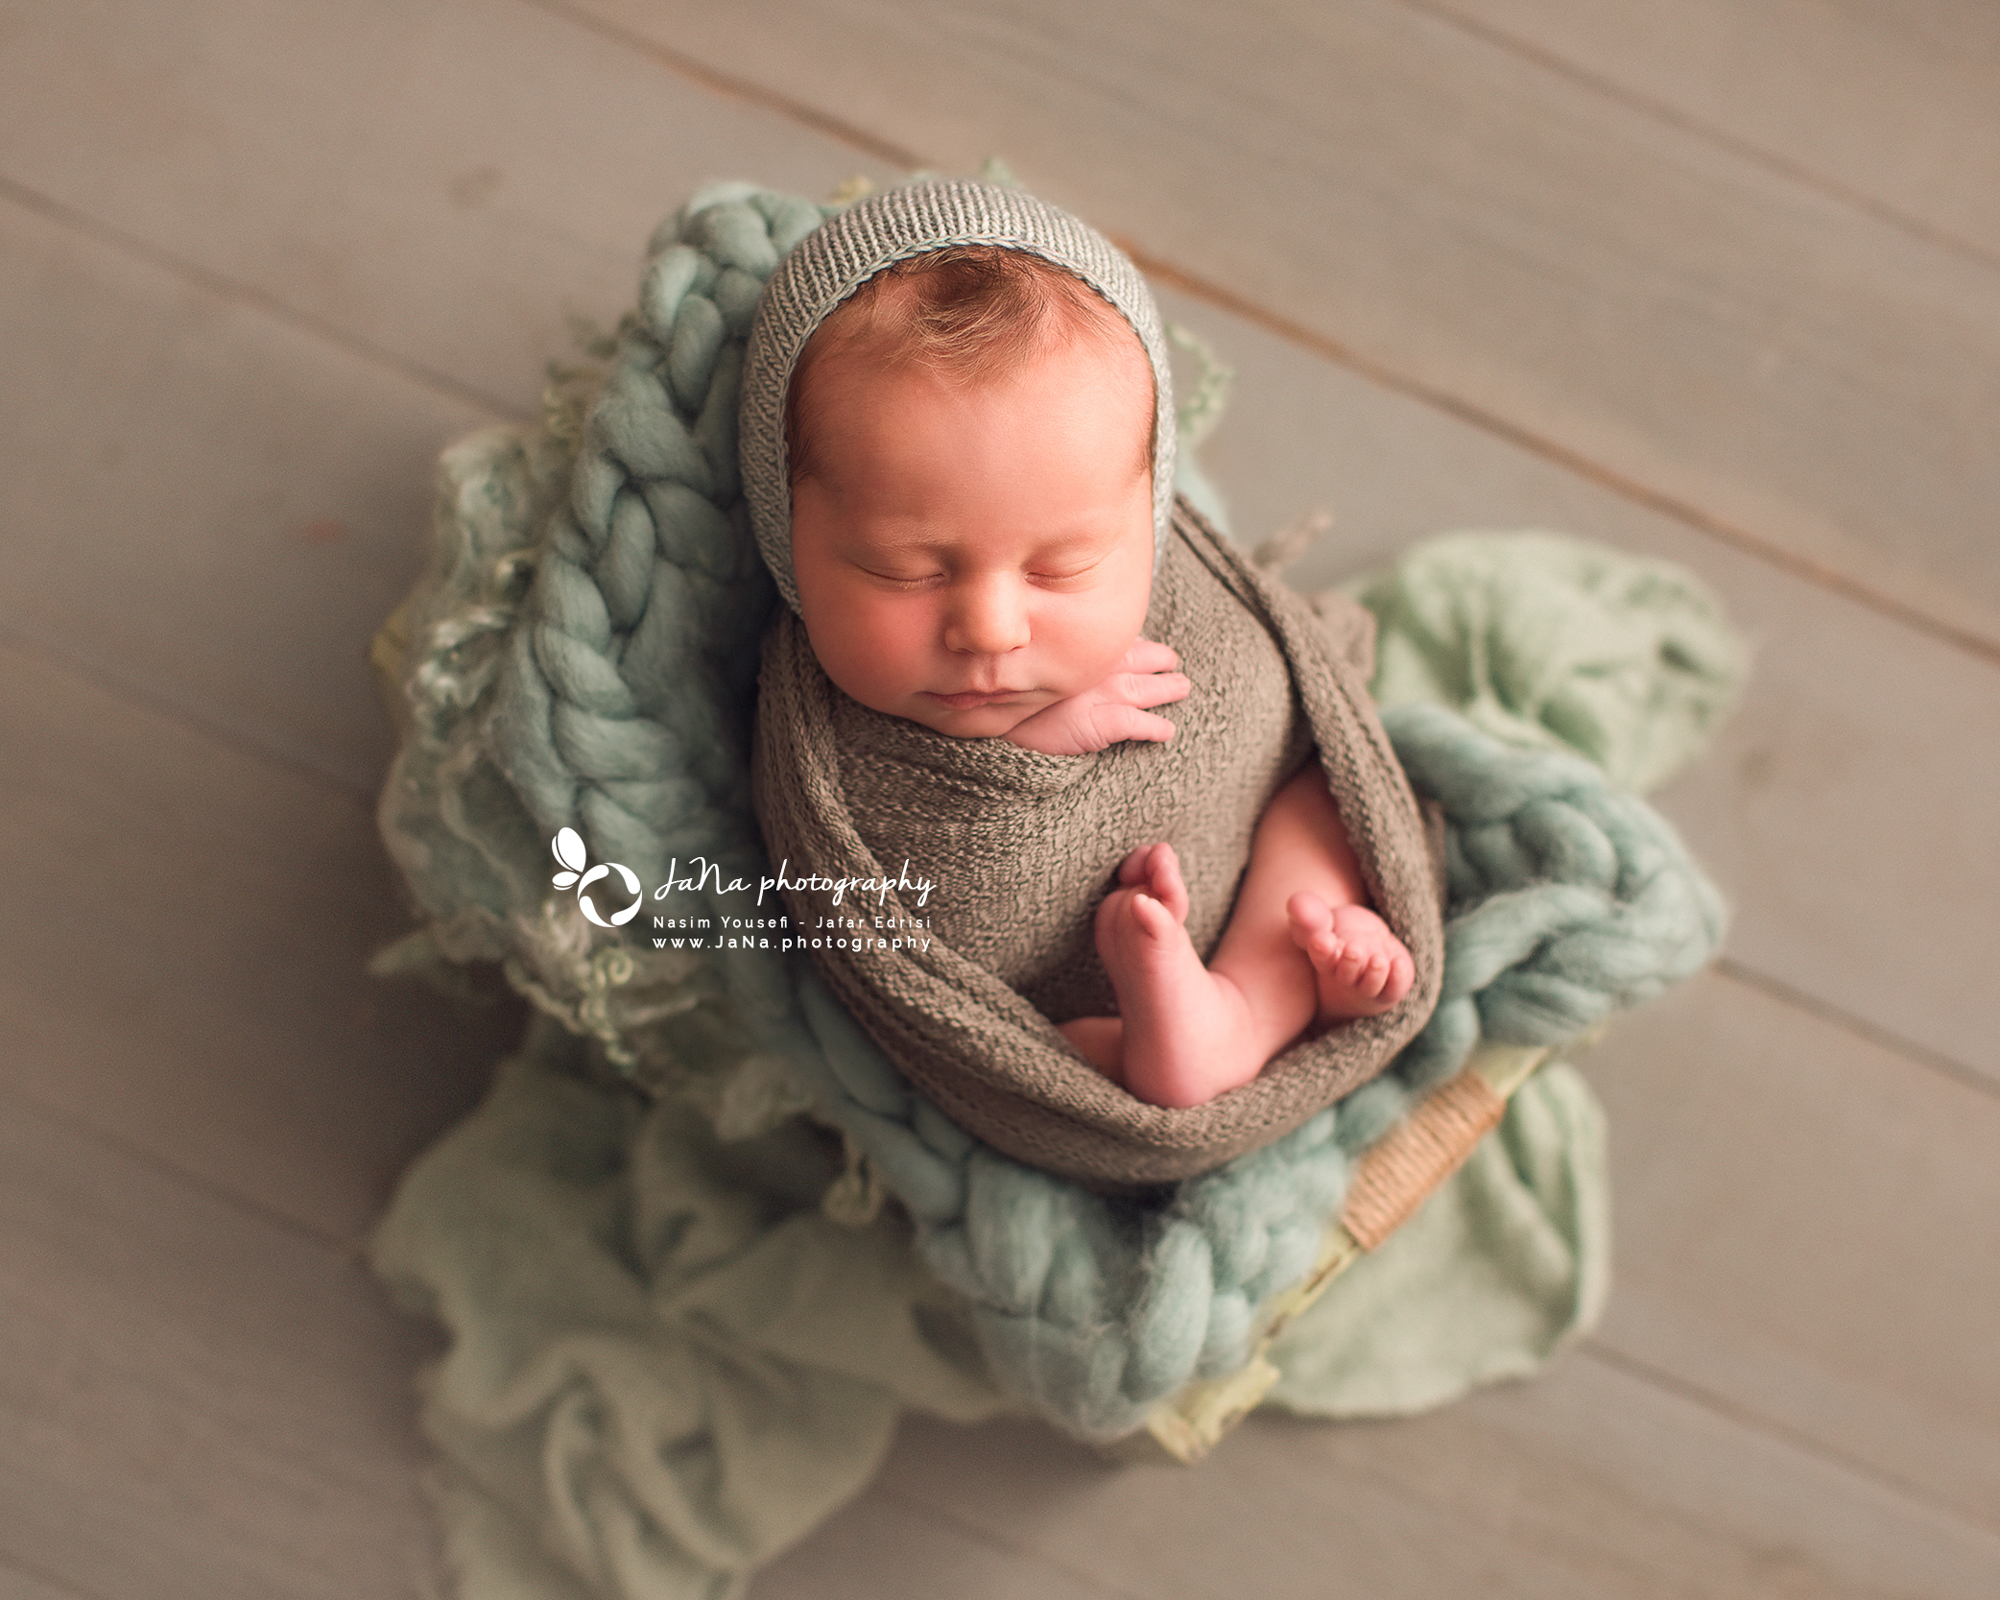 JaNa_Photography_Newborn photography Vancouver – Burnaby | Diego-6